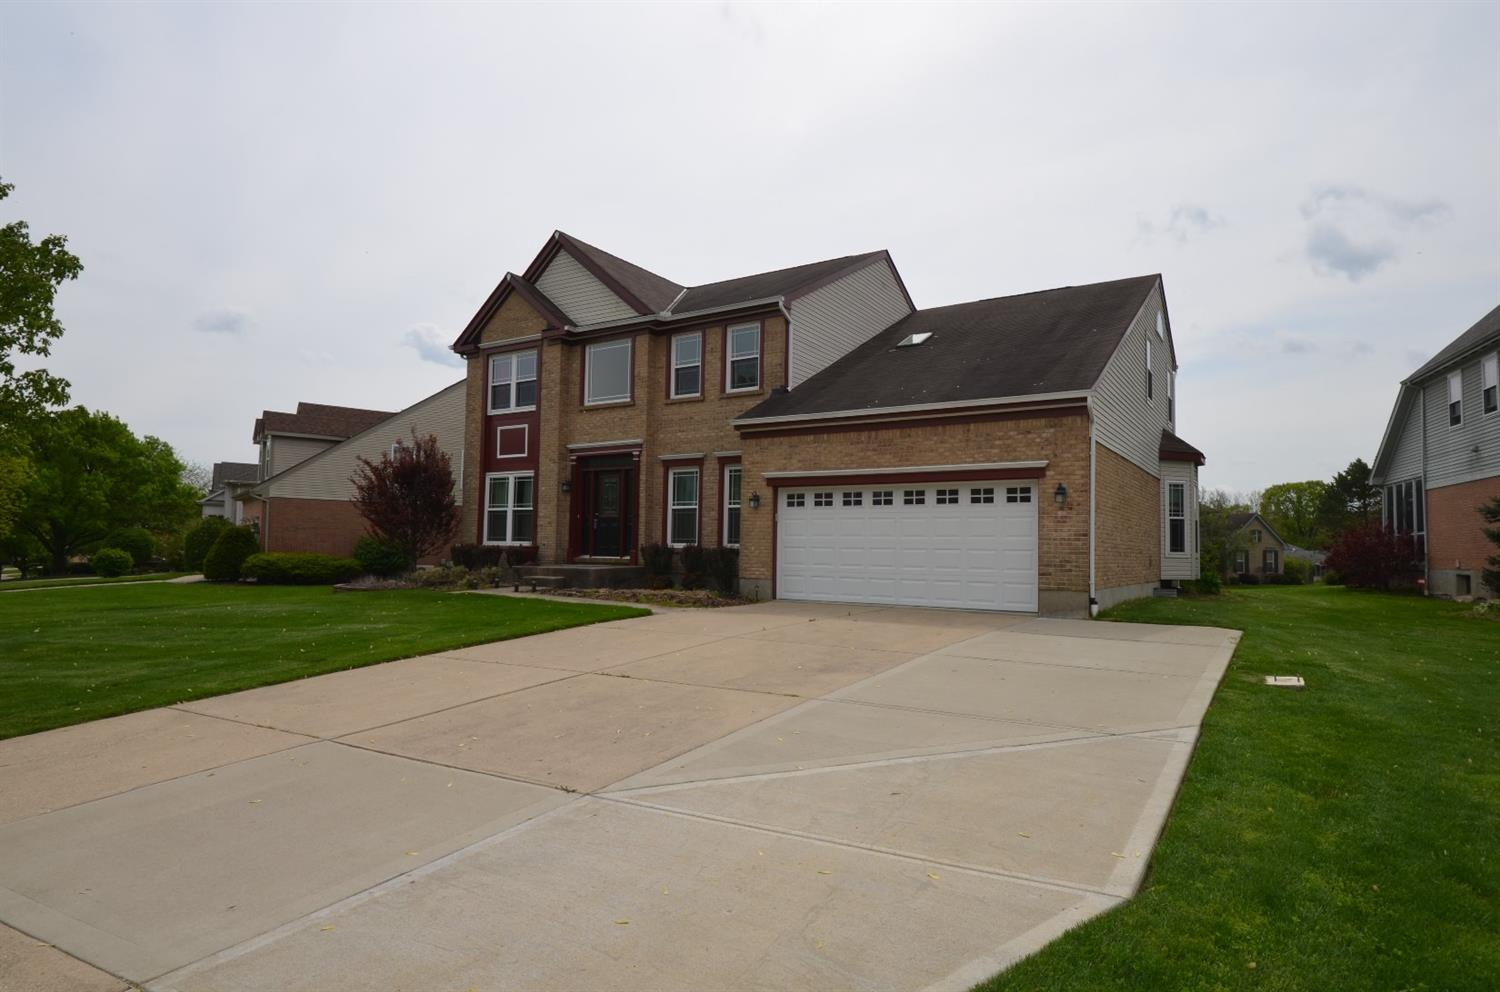 Photo 2 for 12018 Diamondview Dr Sharonville, OH 45241